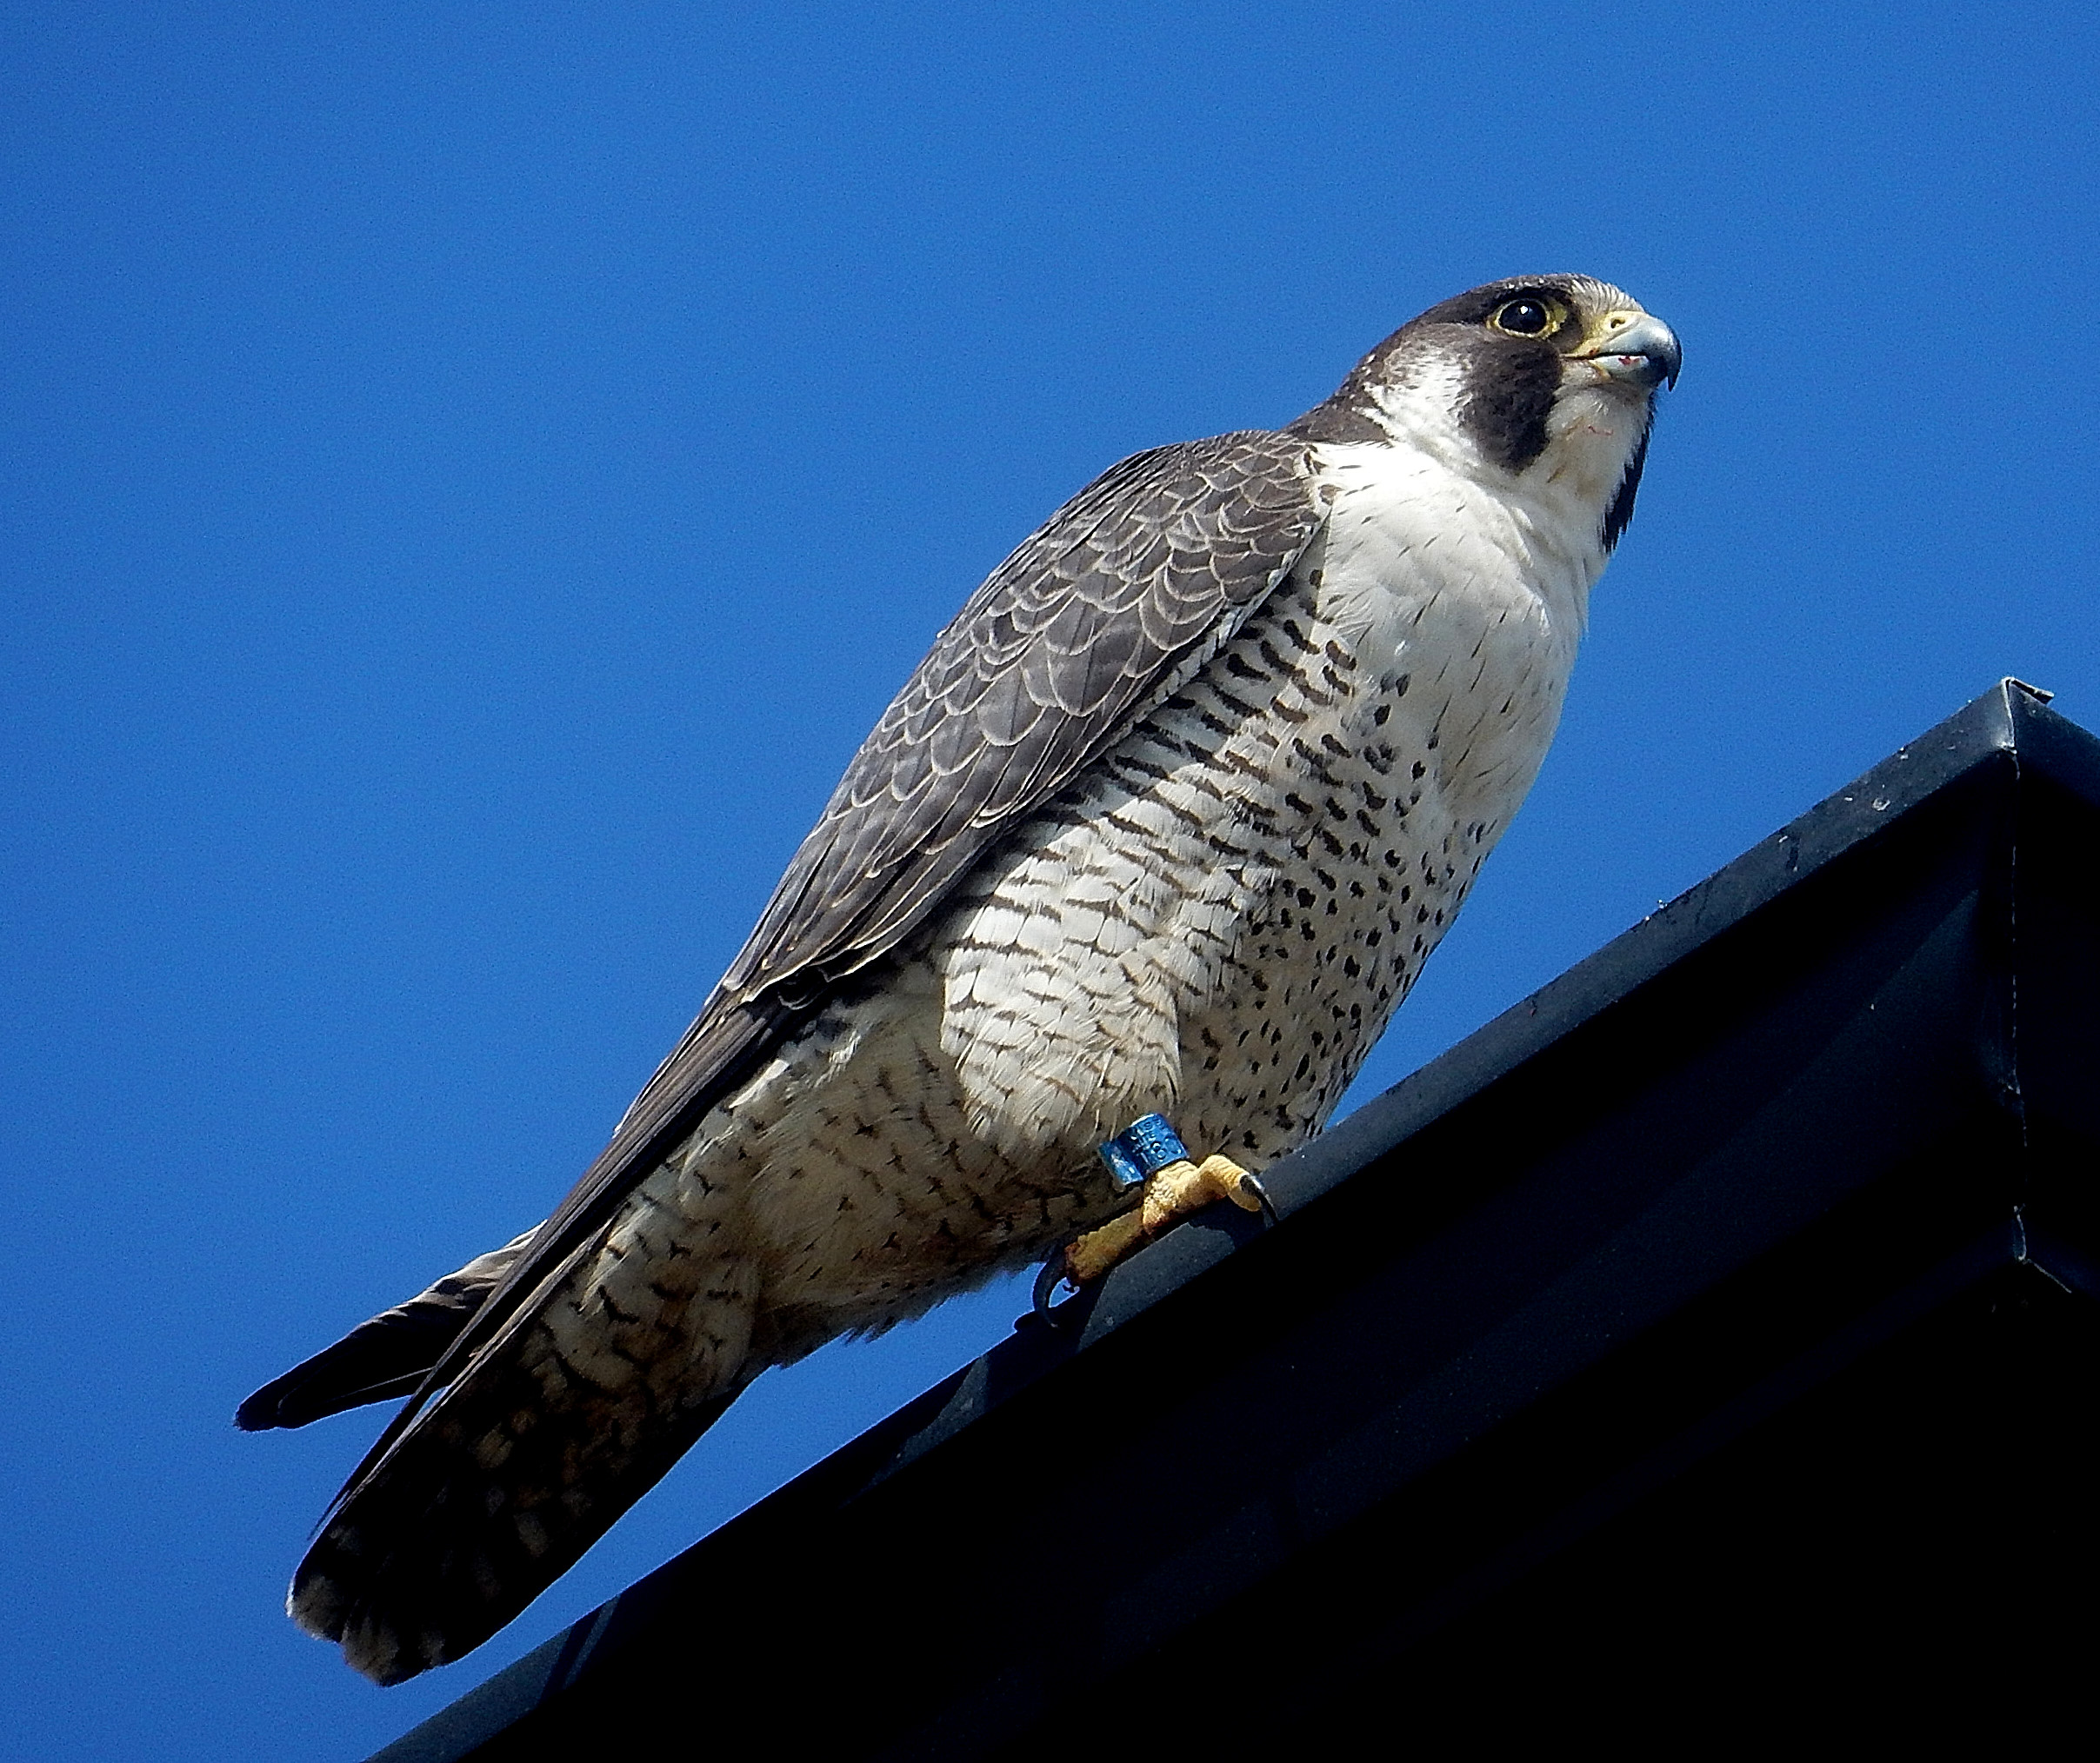 Peregrine falcon. photo: Joe Meche